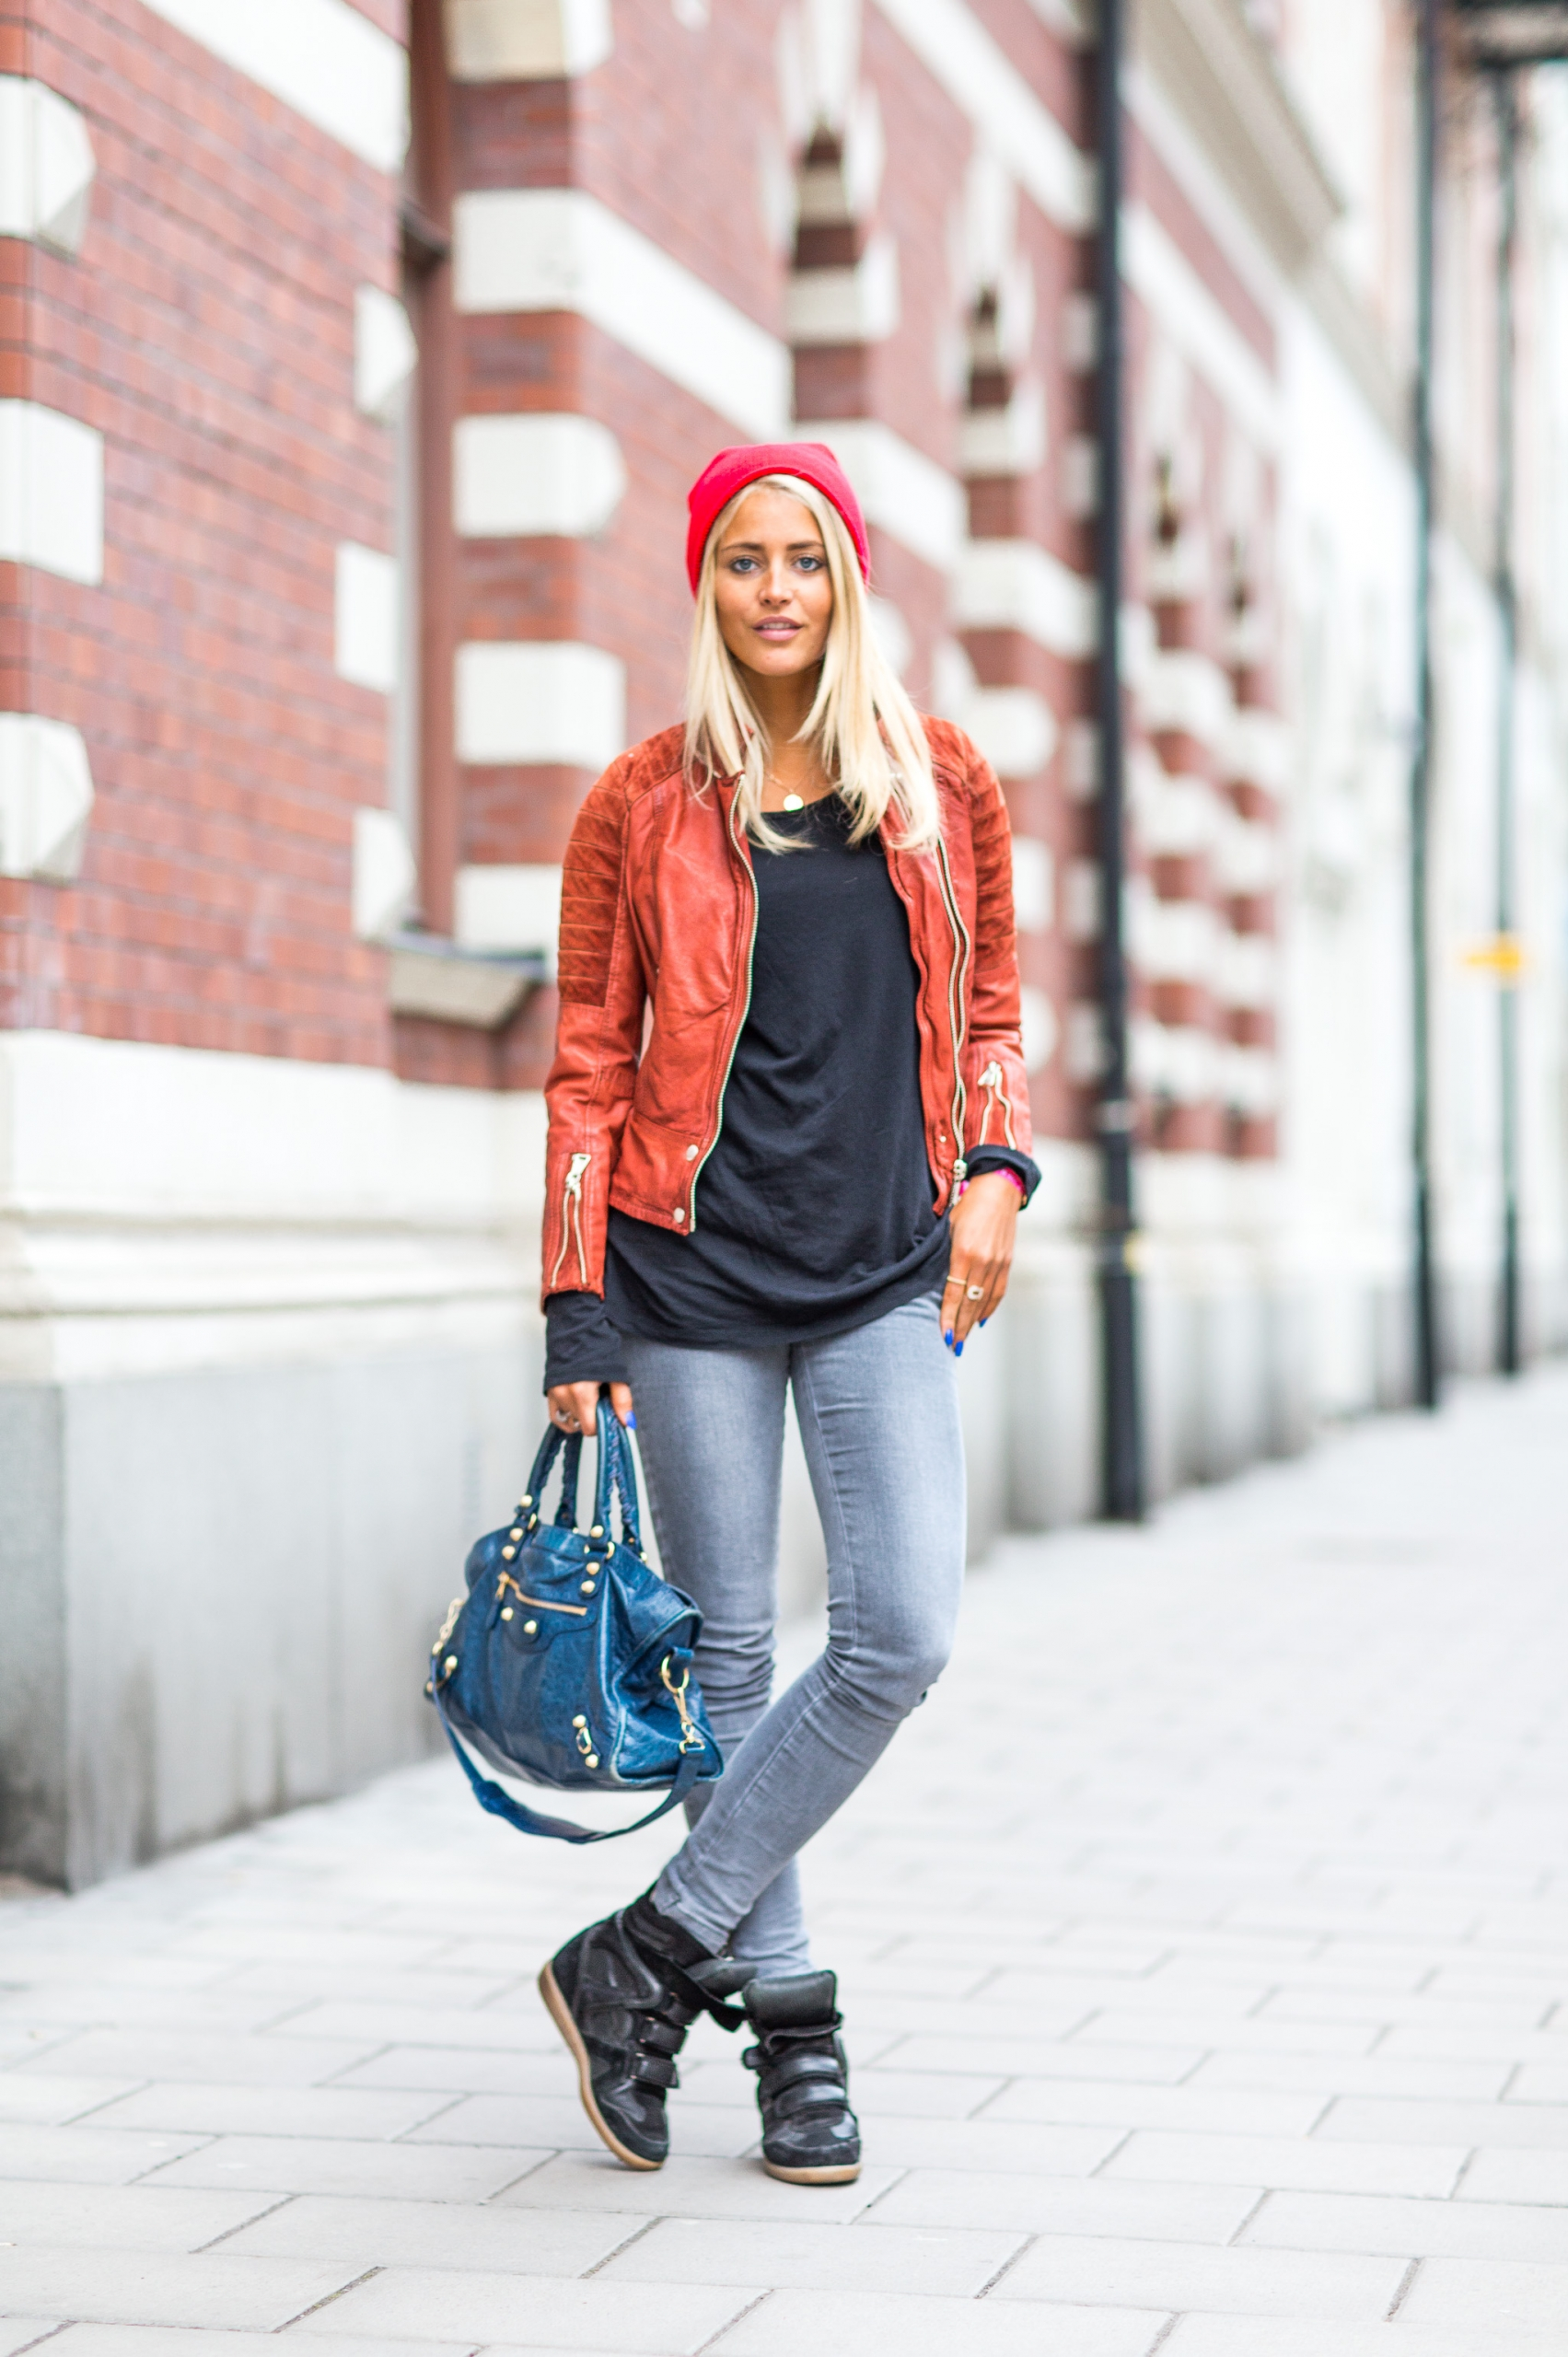 Janni Deler is wearing a red hat from River Island, terracotta leather jacket from Jofama, long sleeved black top from H&M, bag from Balenciaga and shoes from Isabel Marant